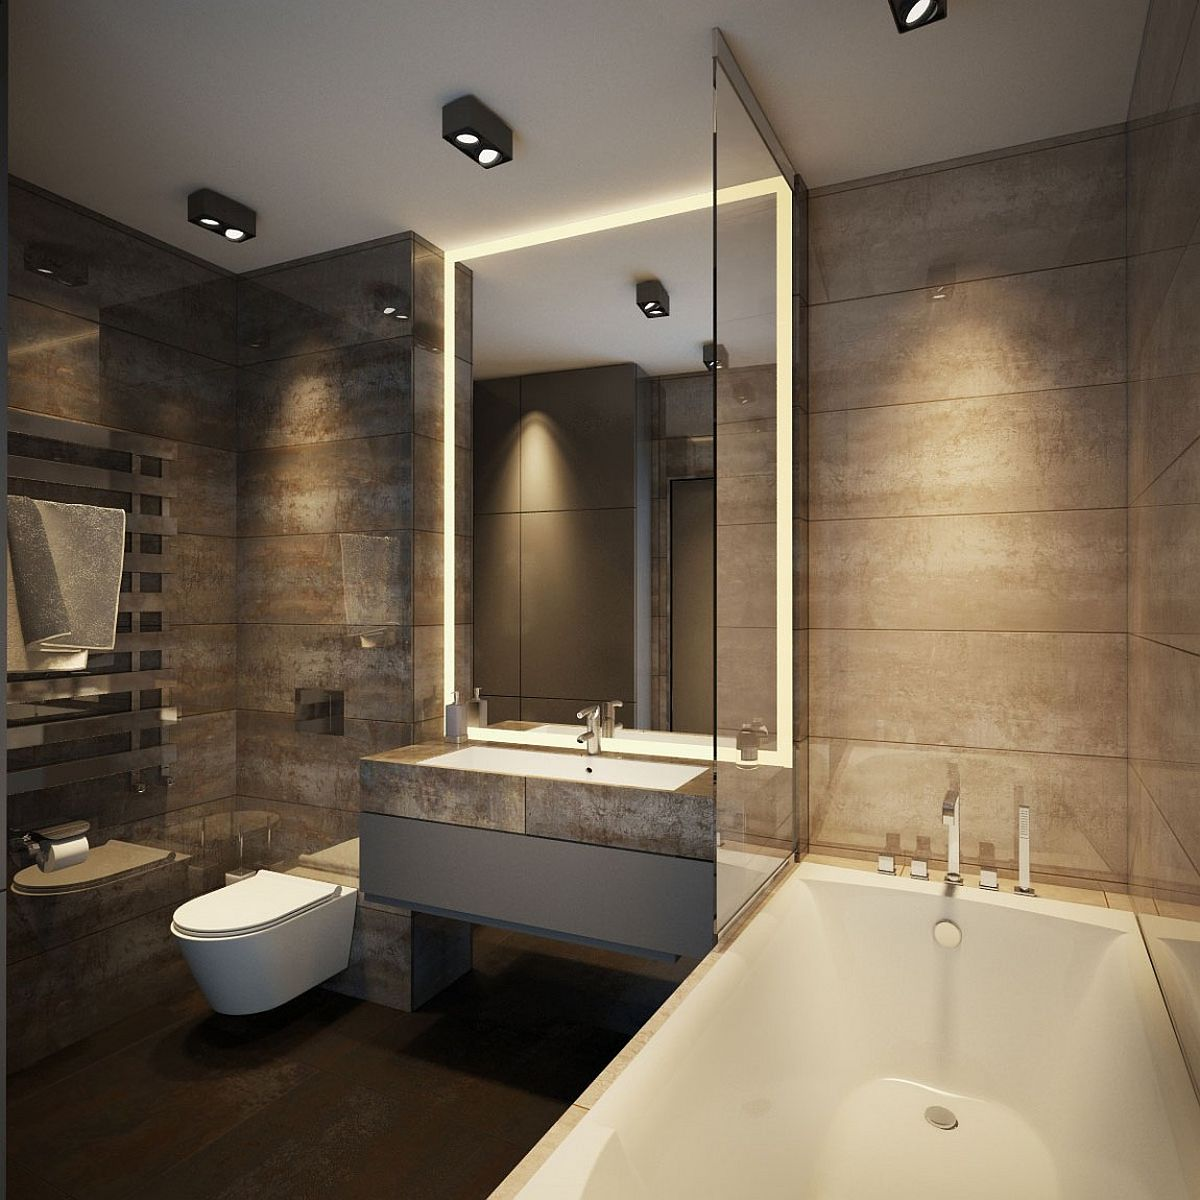 Apartment ernst in kiev inspired by posh hotel ambiance for Apartment bathroom ideas